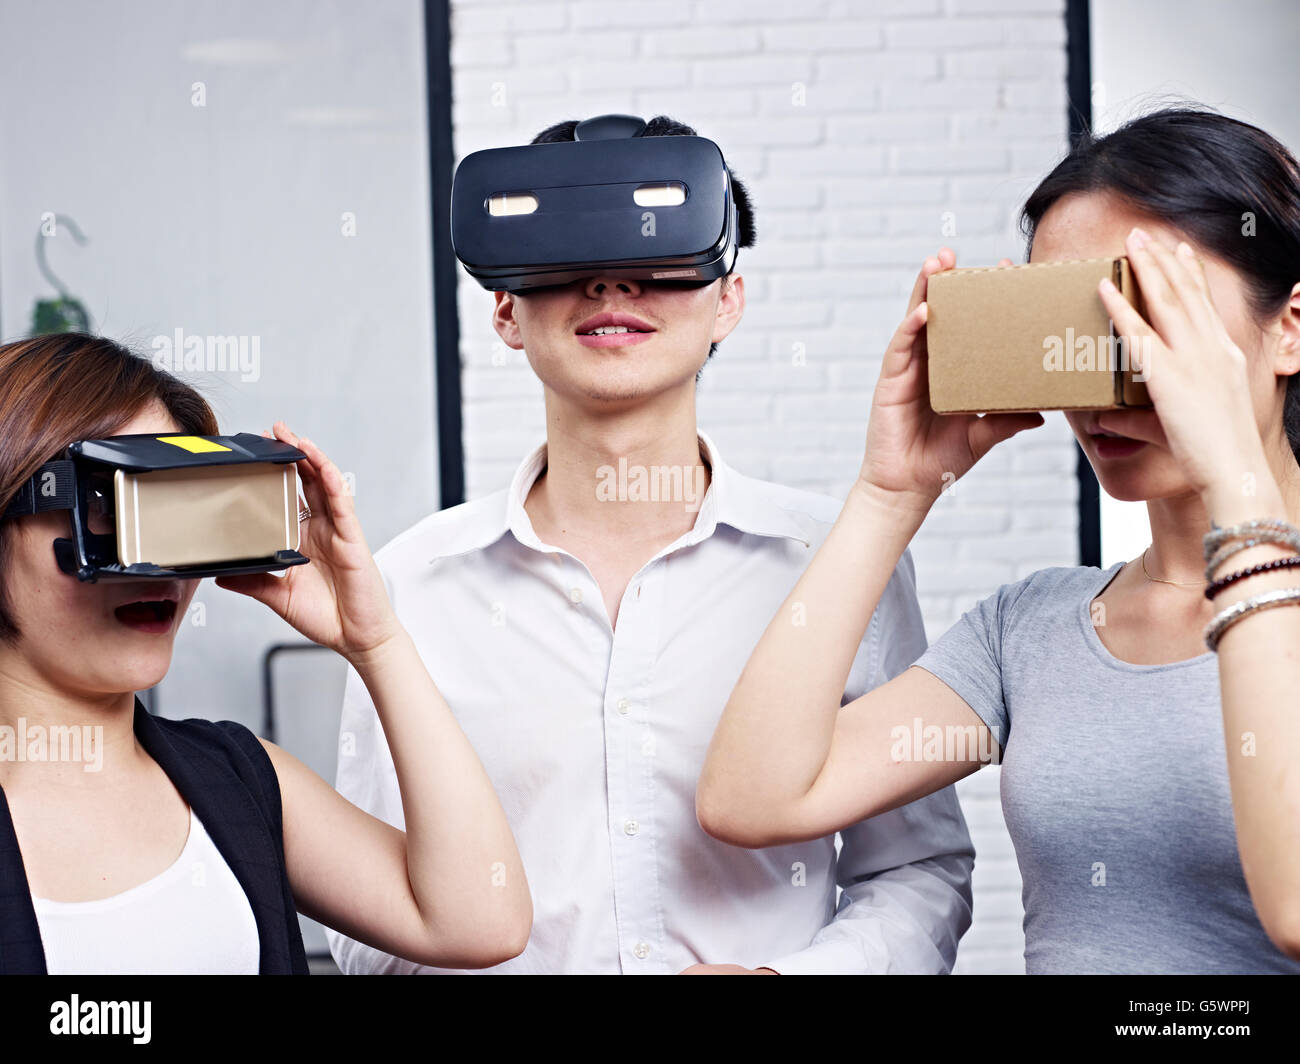 three young asian people wearing different types of virtual reality (VR) goggles. - Stock Image